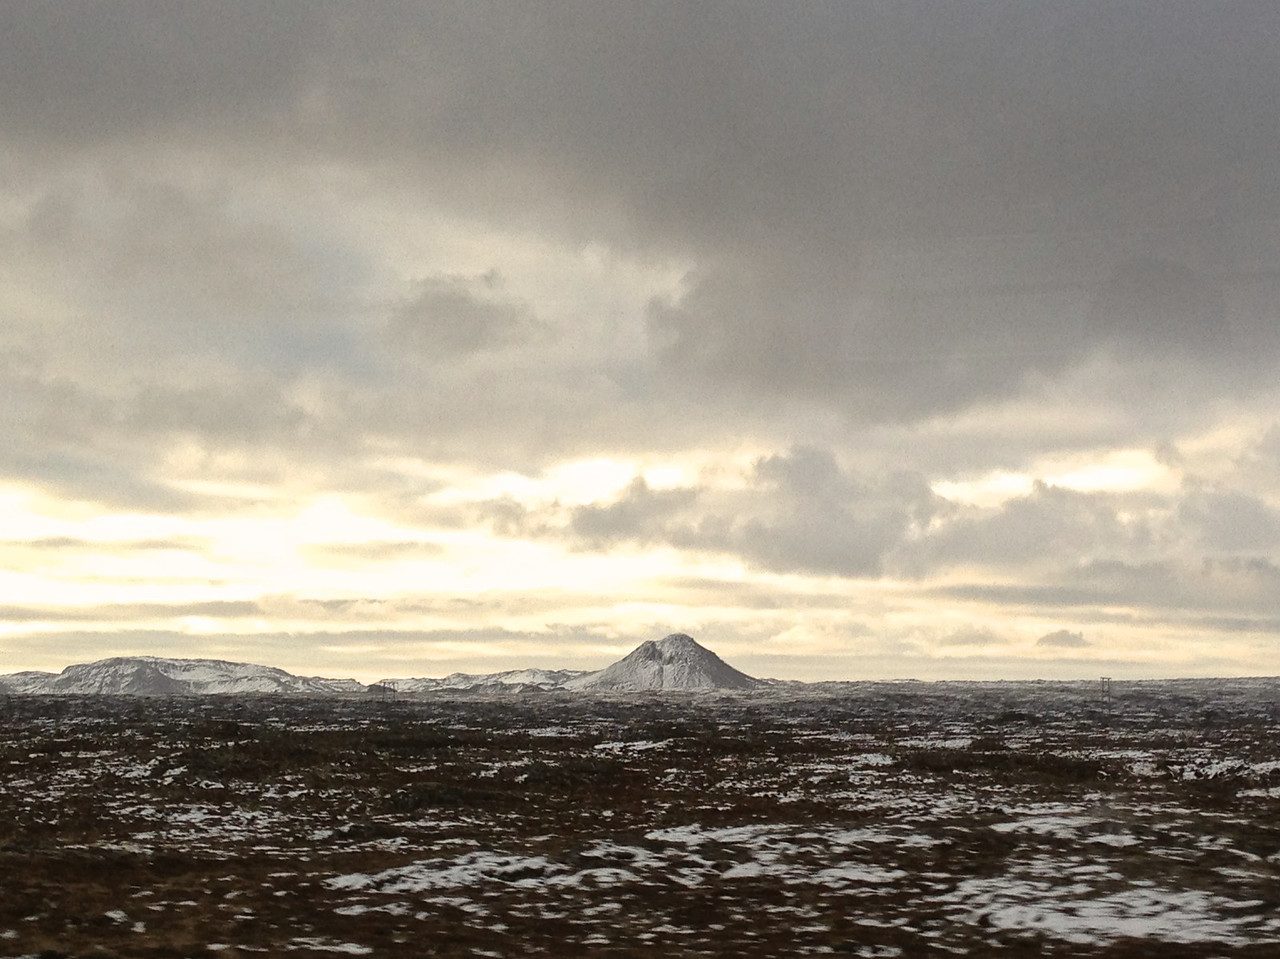 During the trip into Reykjavik, the landscape has a very volcanic look.